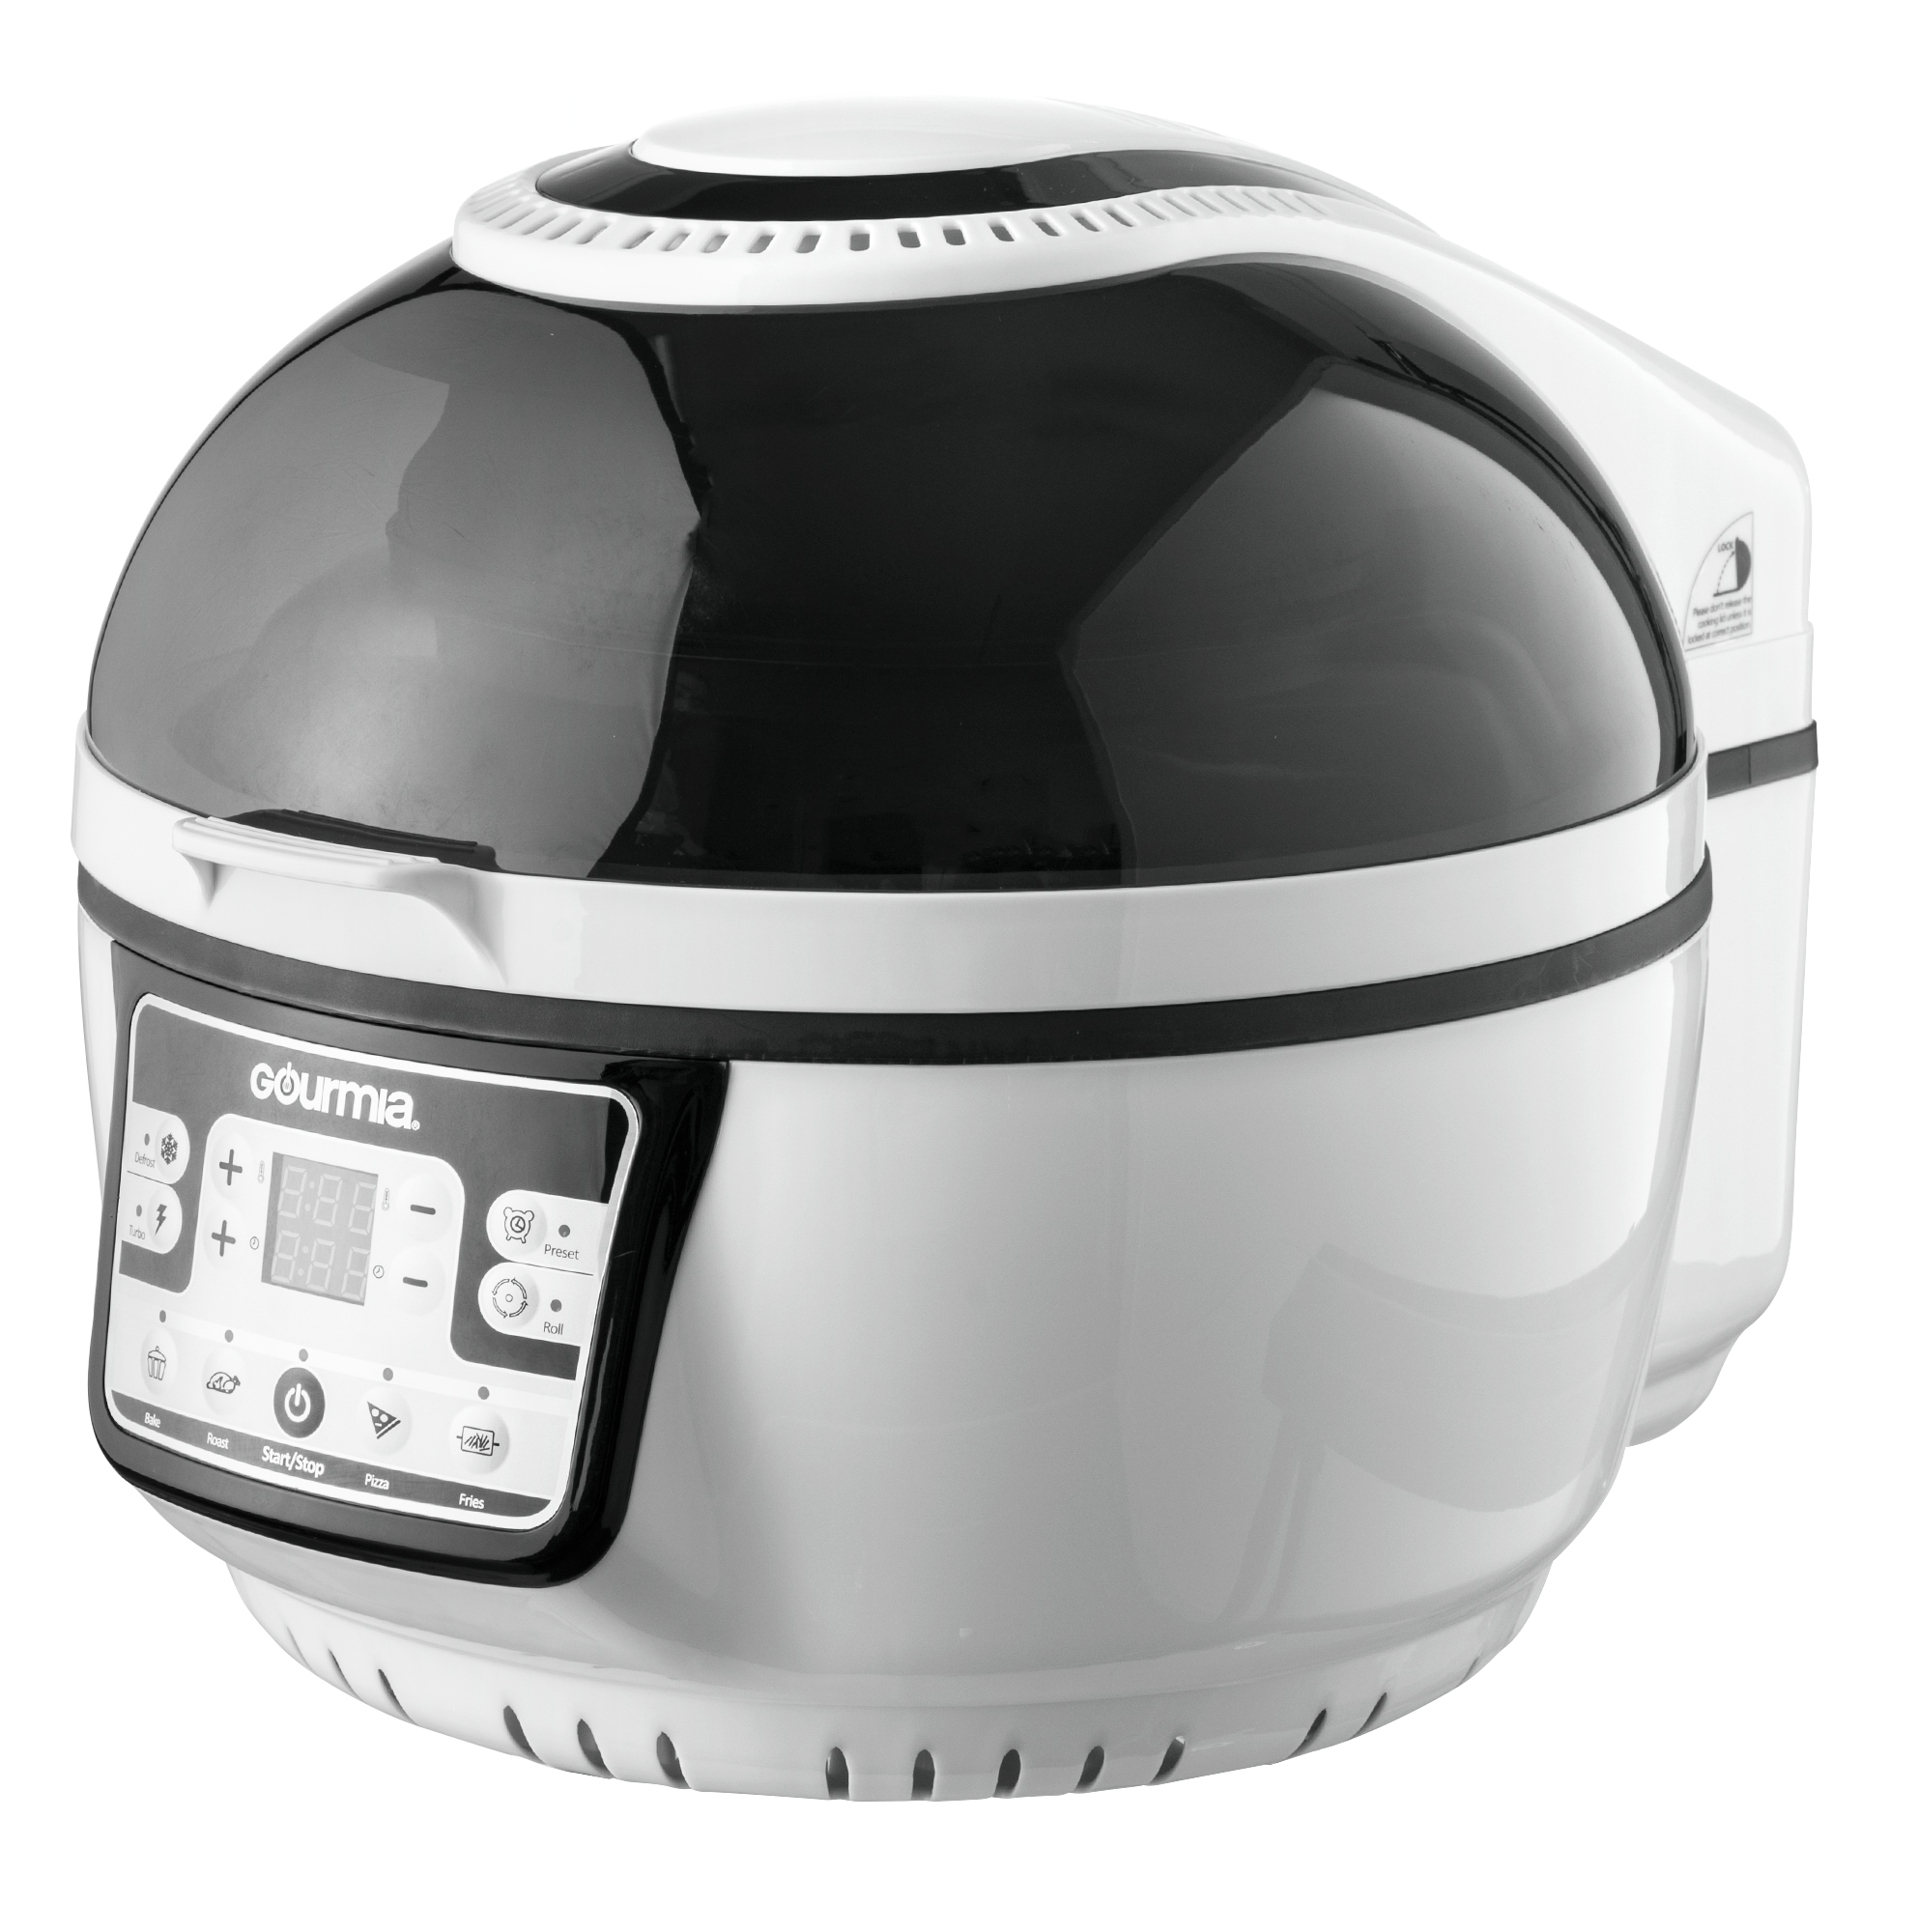 Gourmia digital air fryer griller and roaster ebay Modern home air fryer